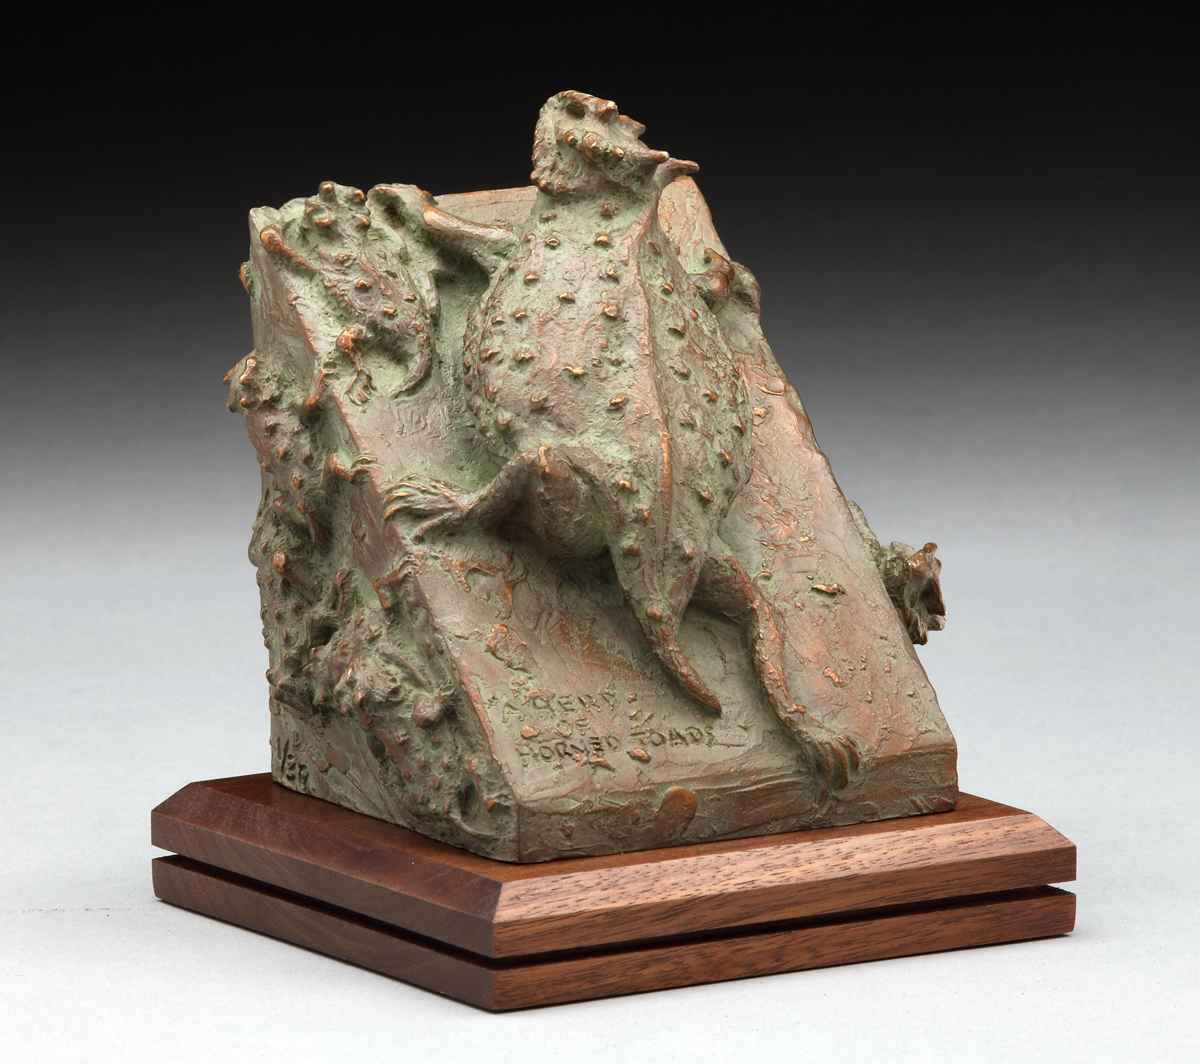 A Herd of Horned Toads by  Garland Weeks - Masterpiece Online